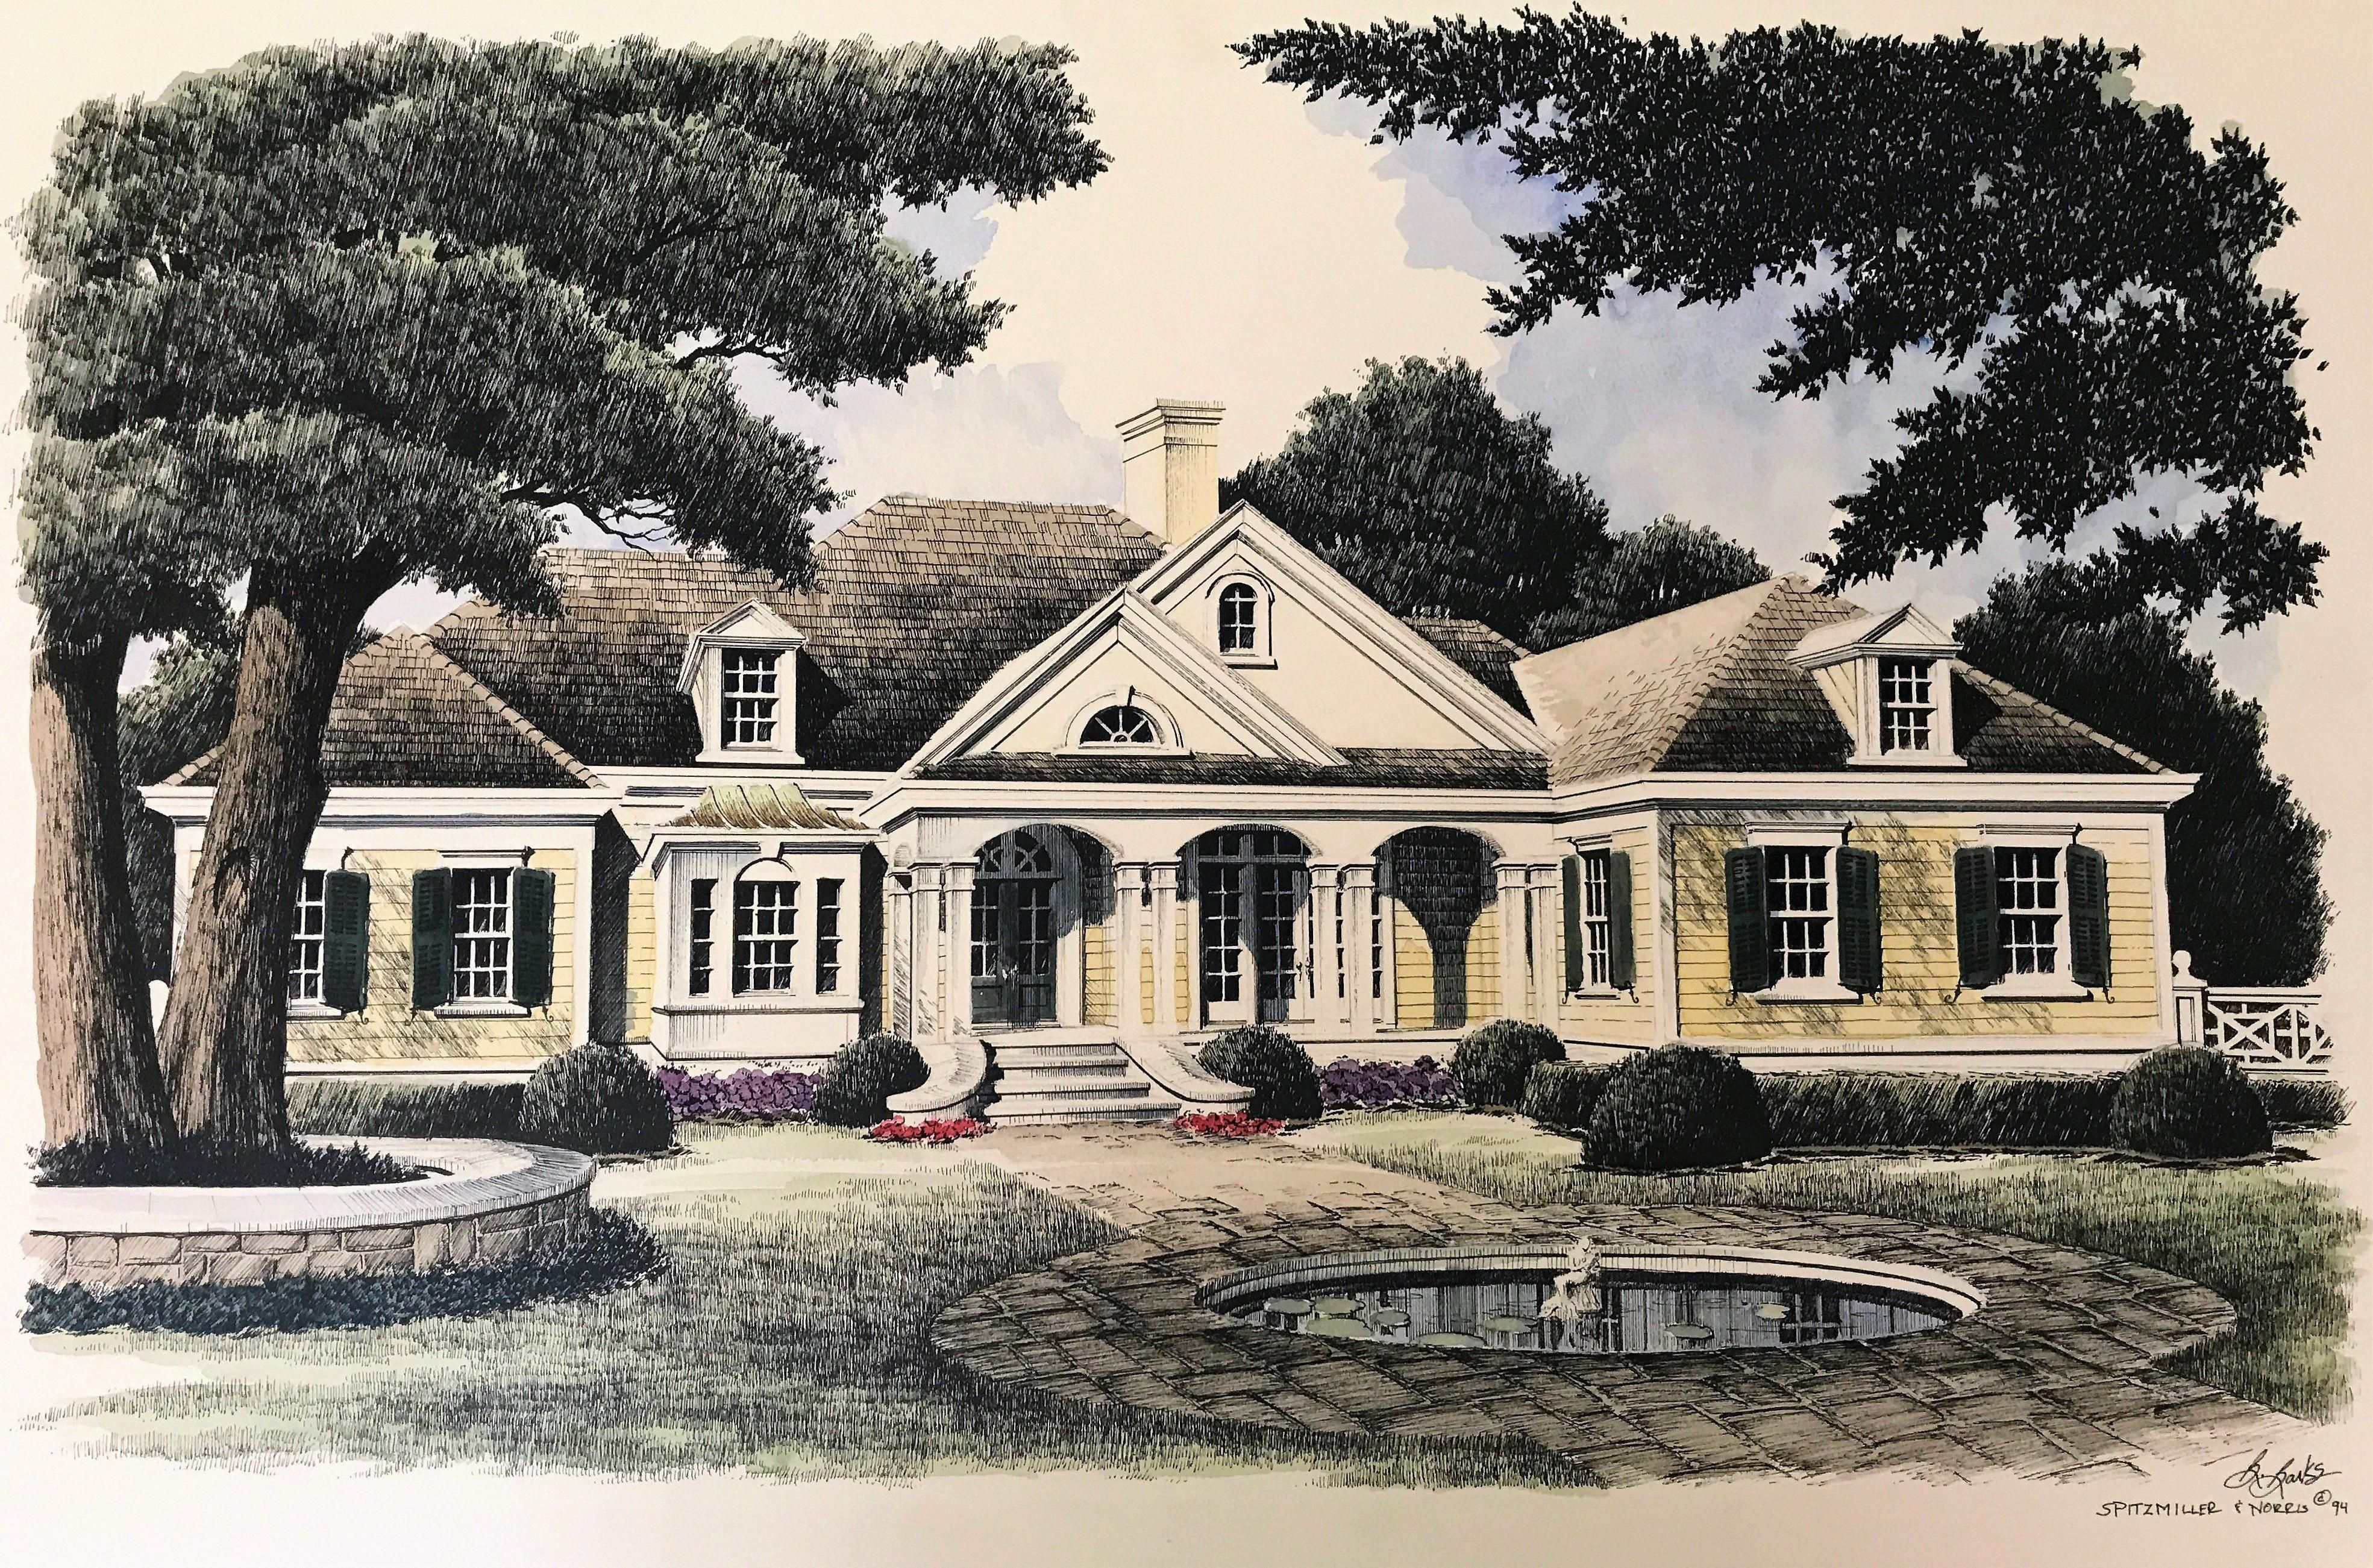 Interior Design Ideas280 Saleprice 47 French Cottage Southern Living House Plans House Plans